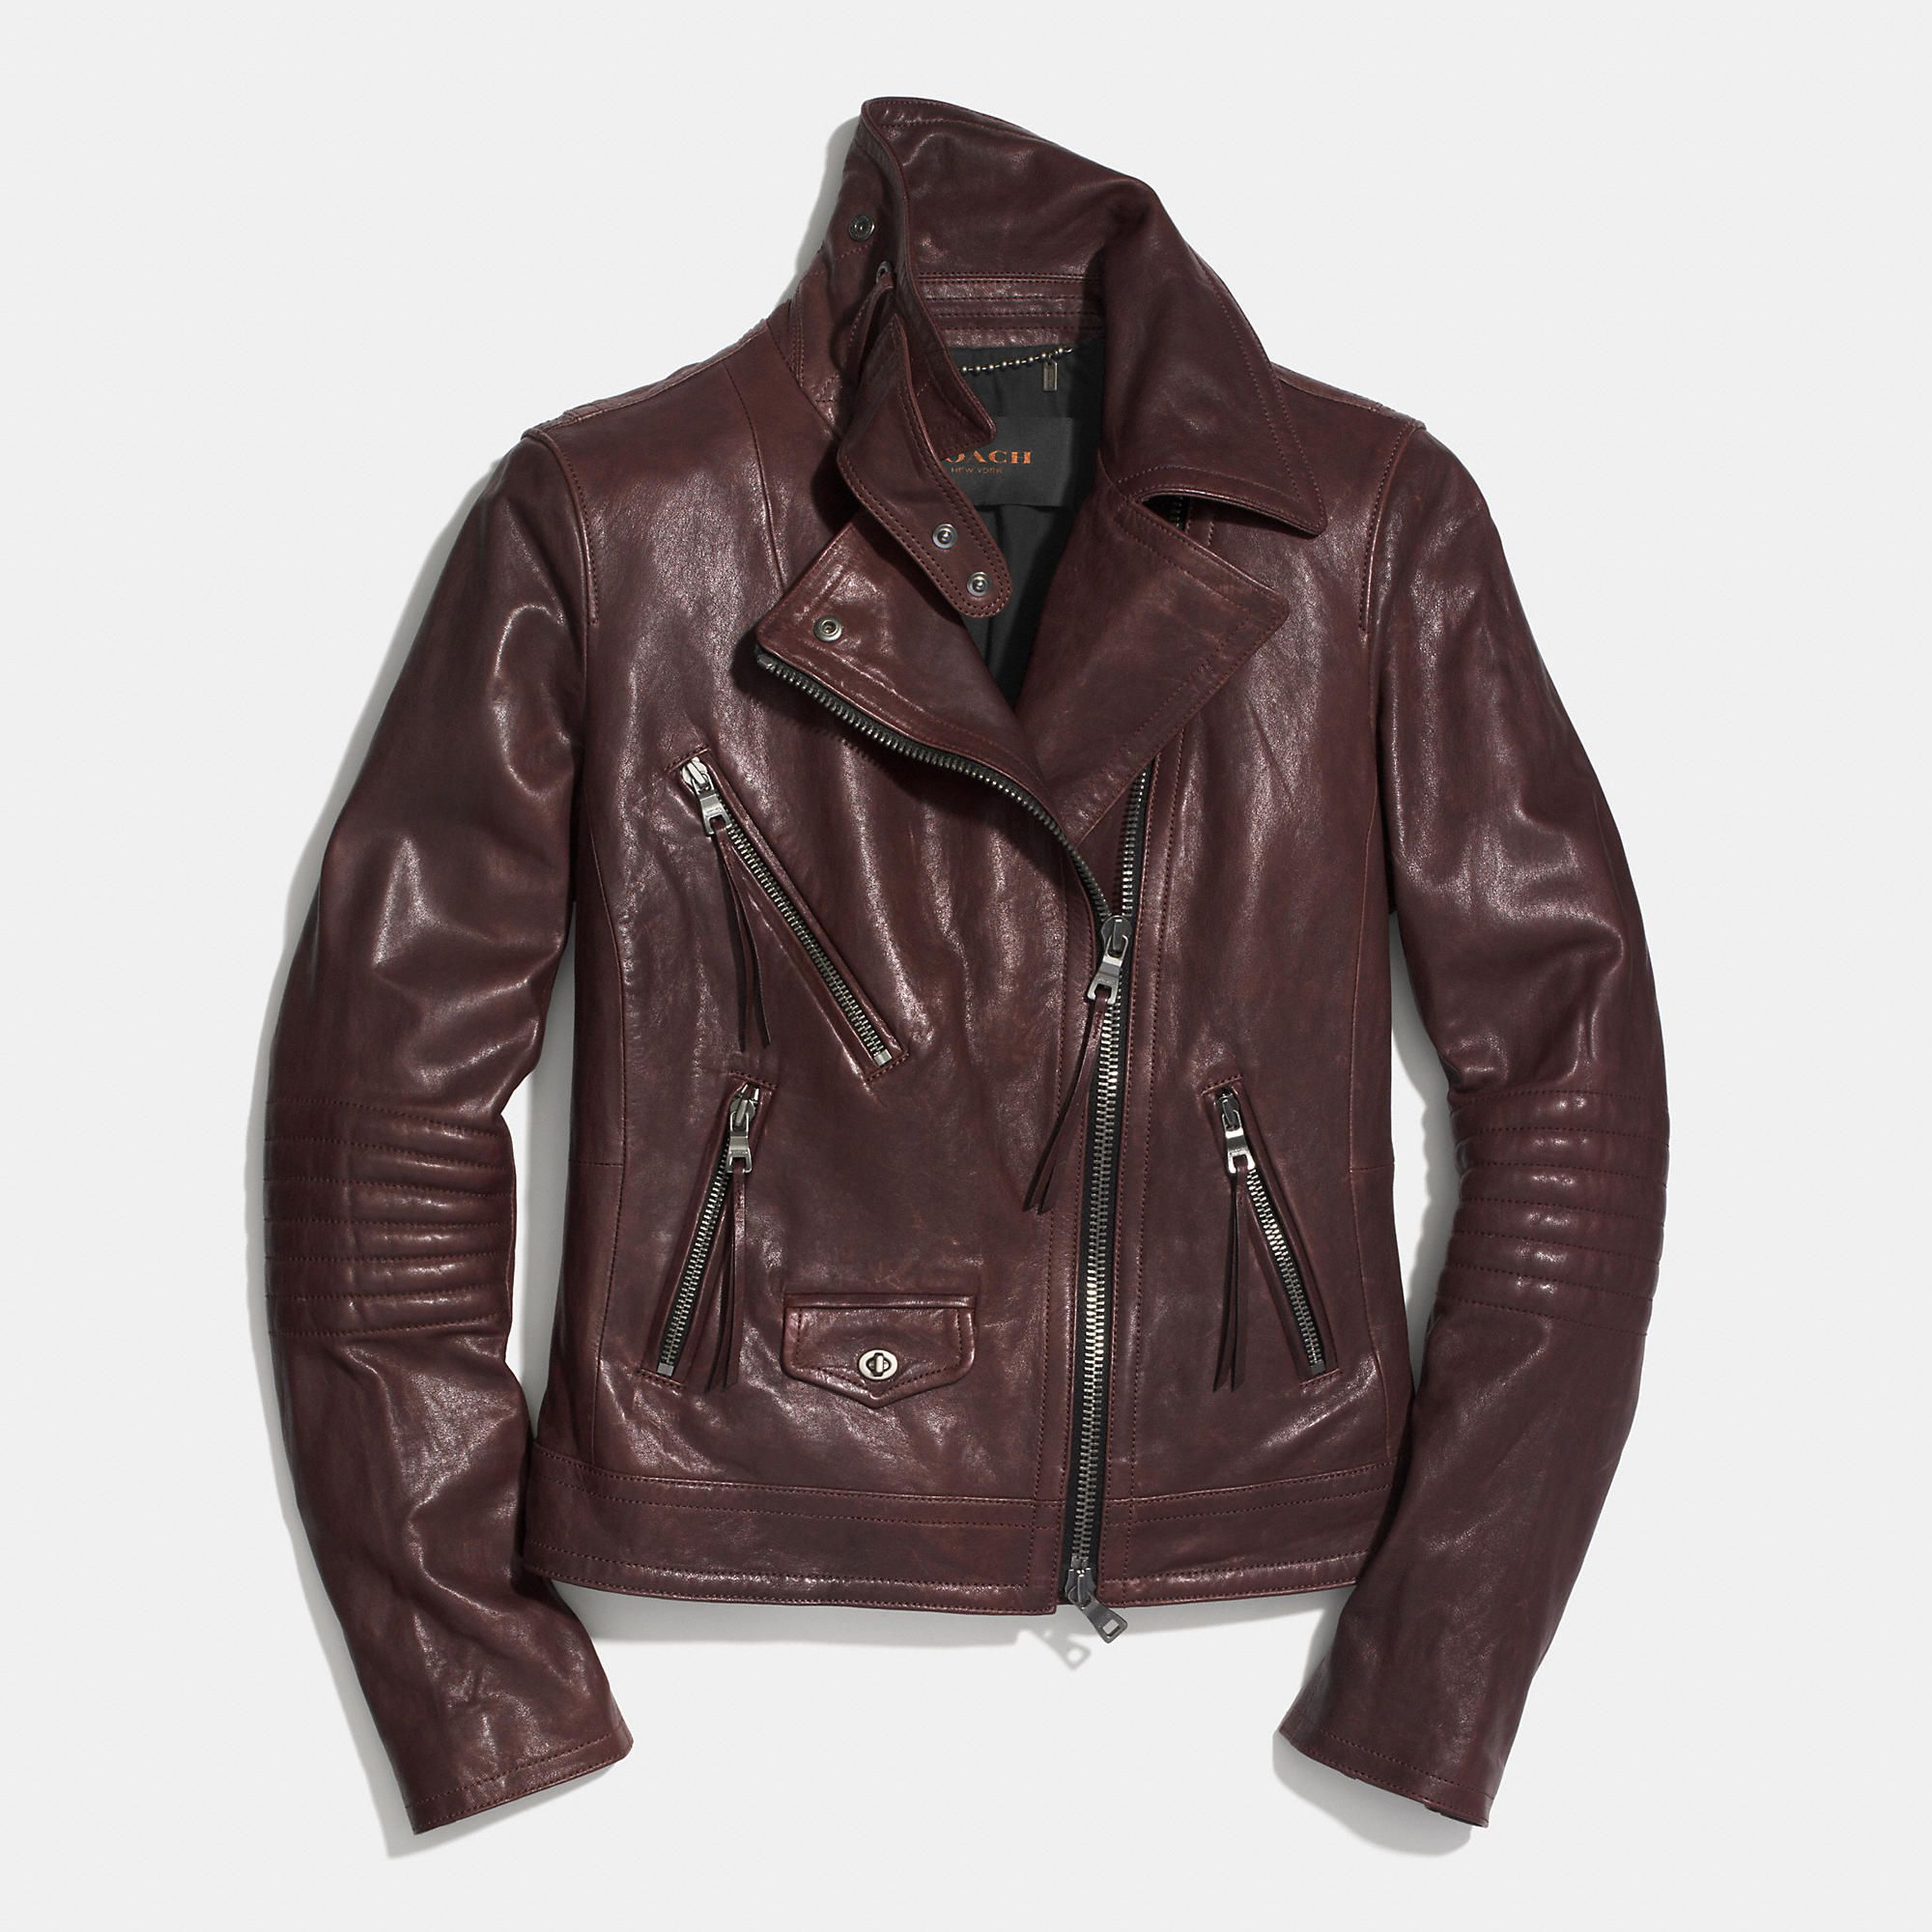 Coach SLIM LEATHER MOTO JACKET in oxblood Leather